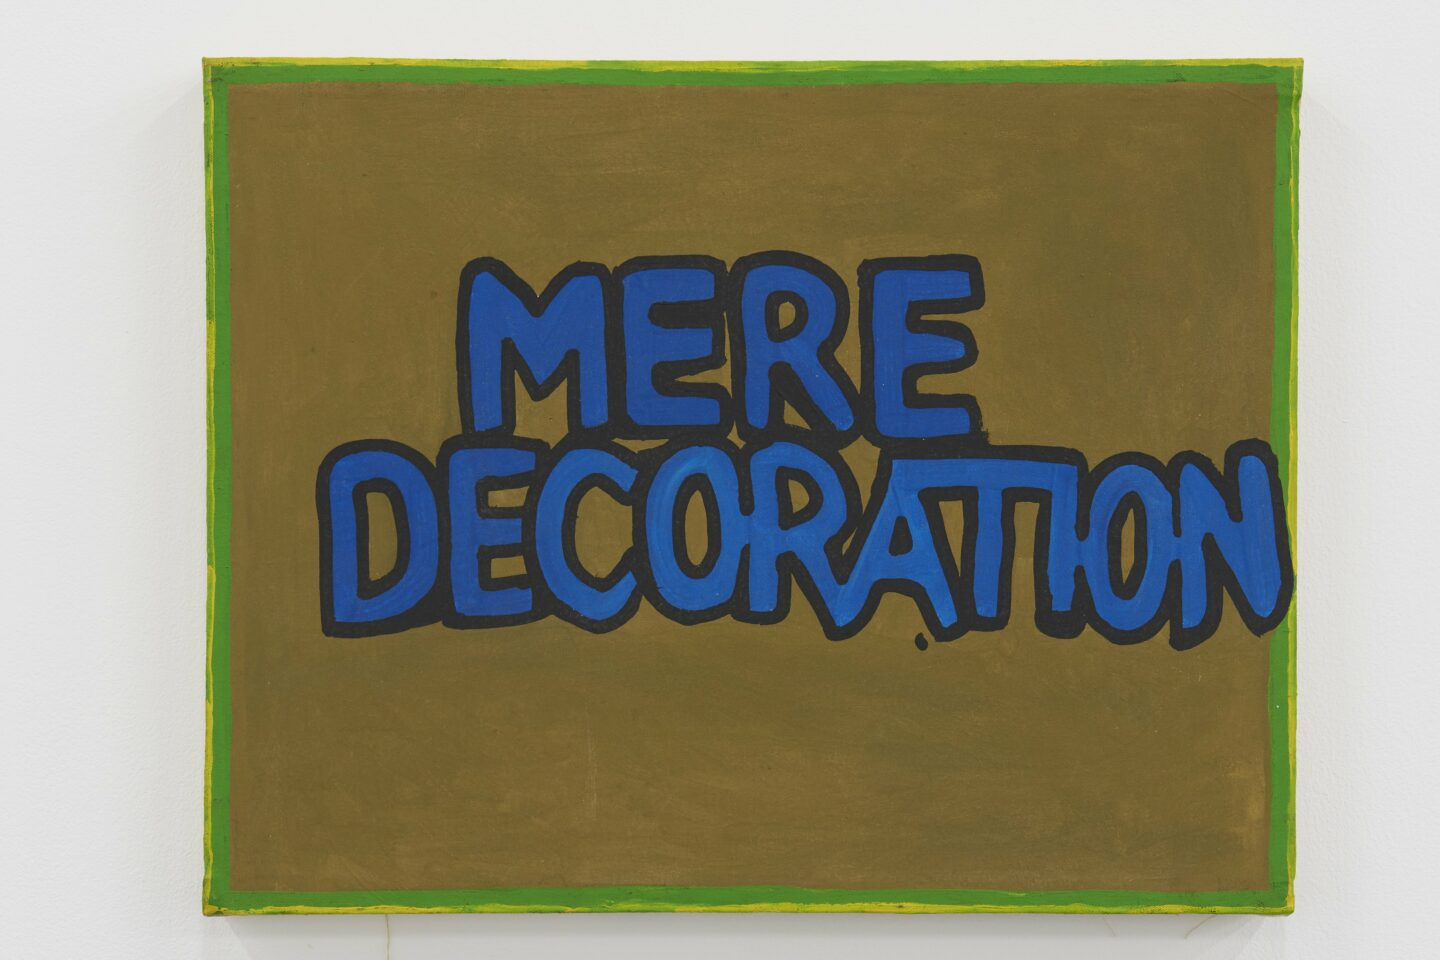 Exhibition View Gene Beery Retrospective «view on Mere Decoration, 1976» at Fri-Art Kunsthale, Fribourg / Photo: Guillaume Baeriswyl / Courtesy: the artist and Greenspon, New York